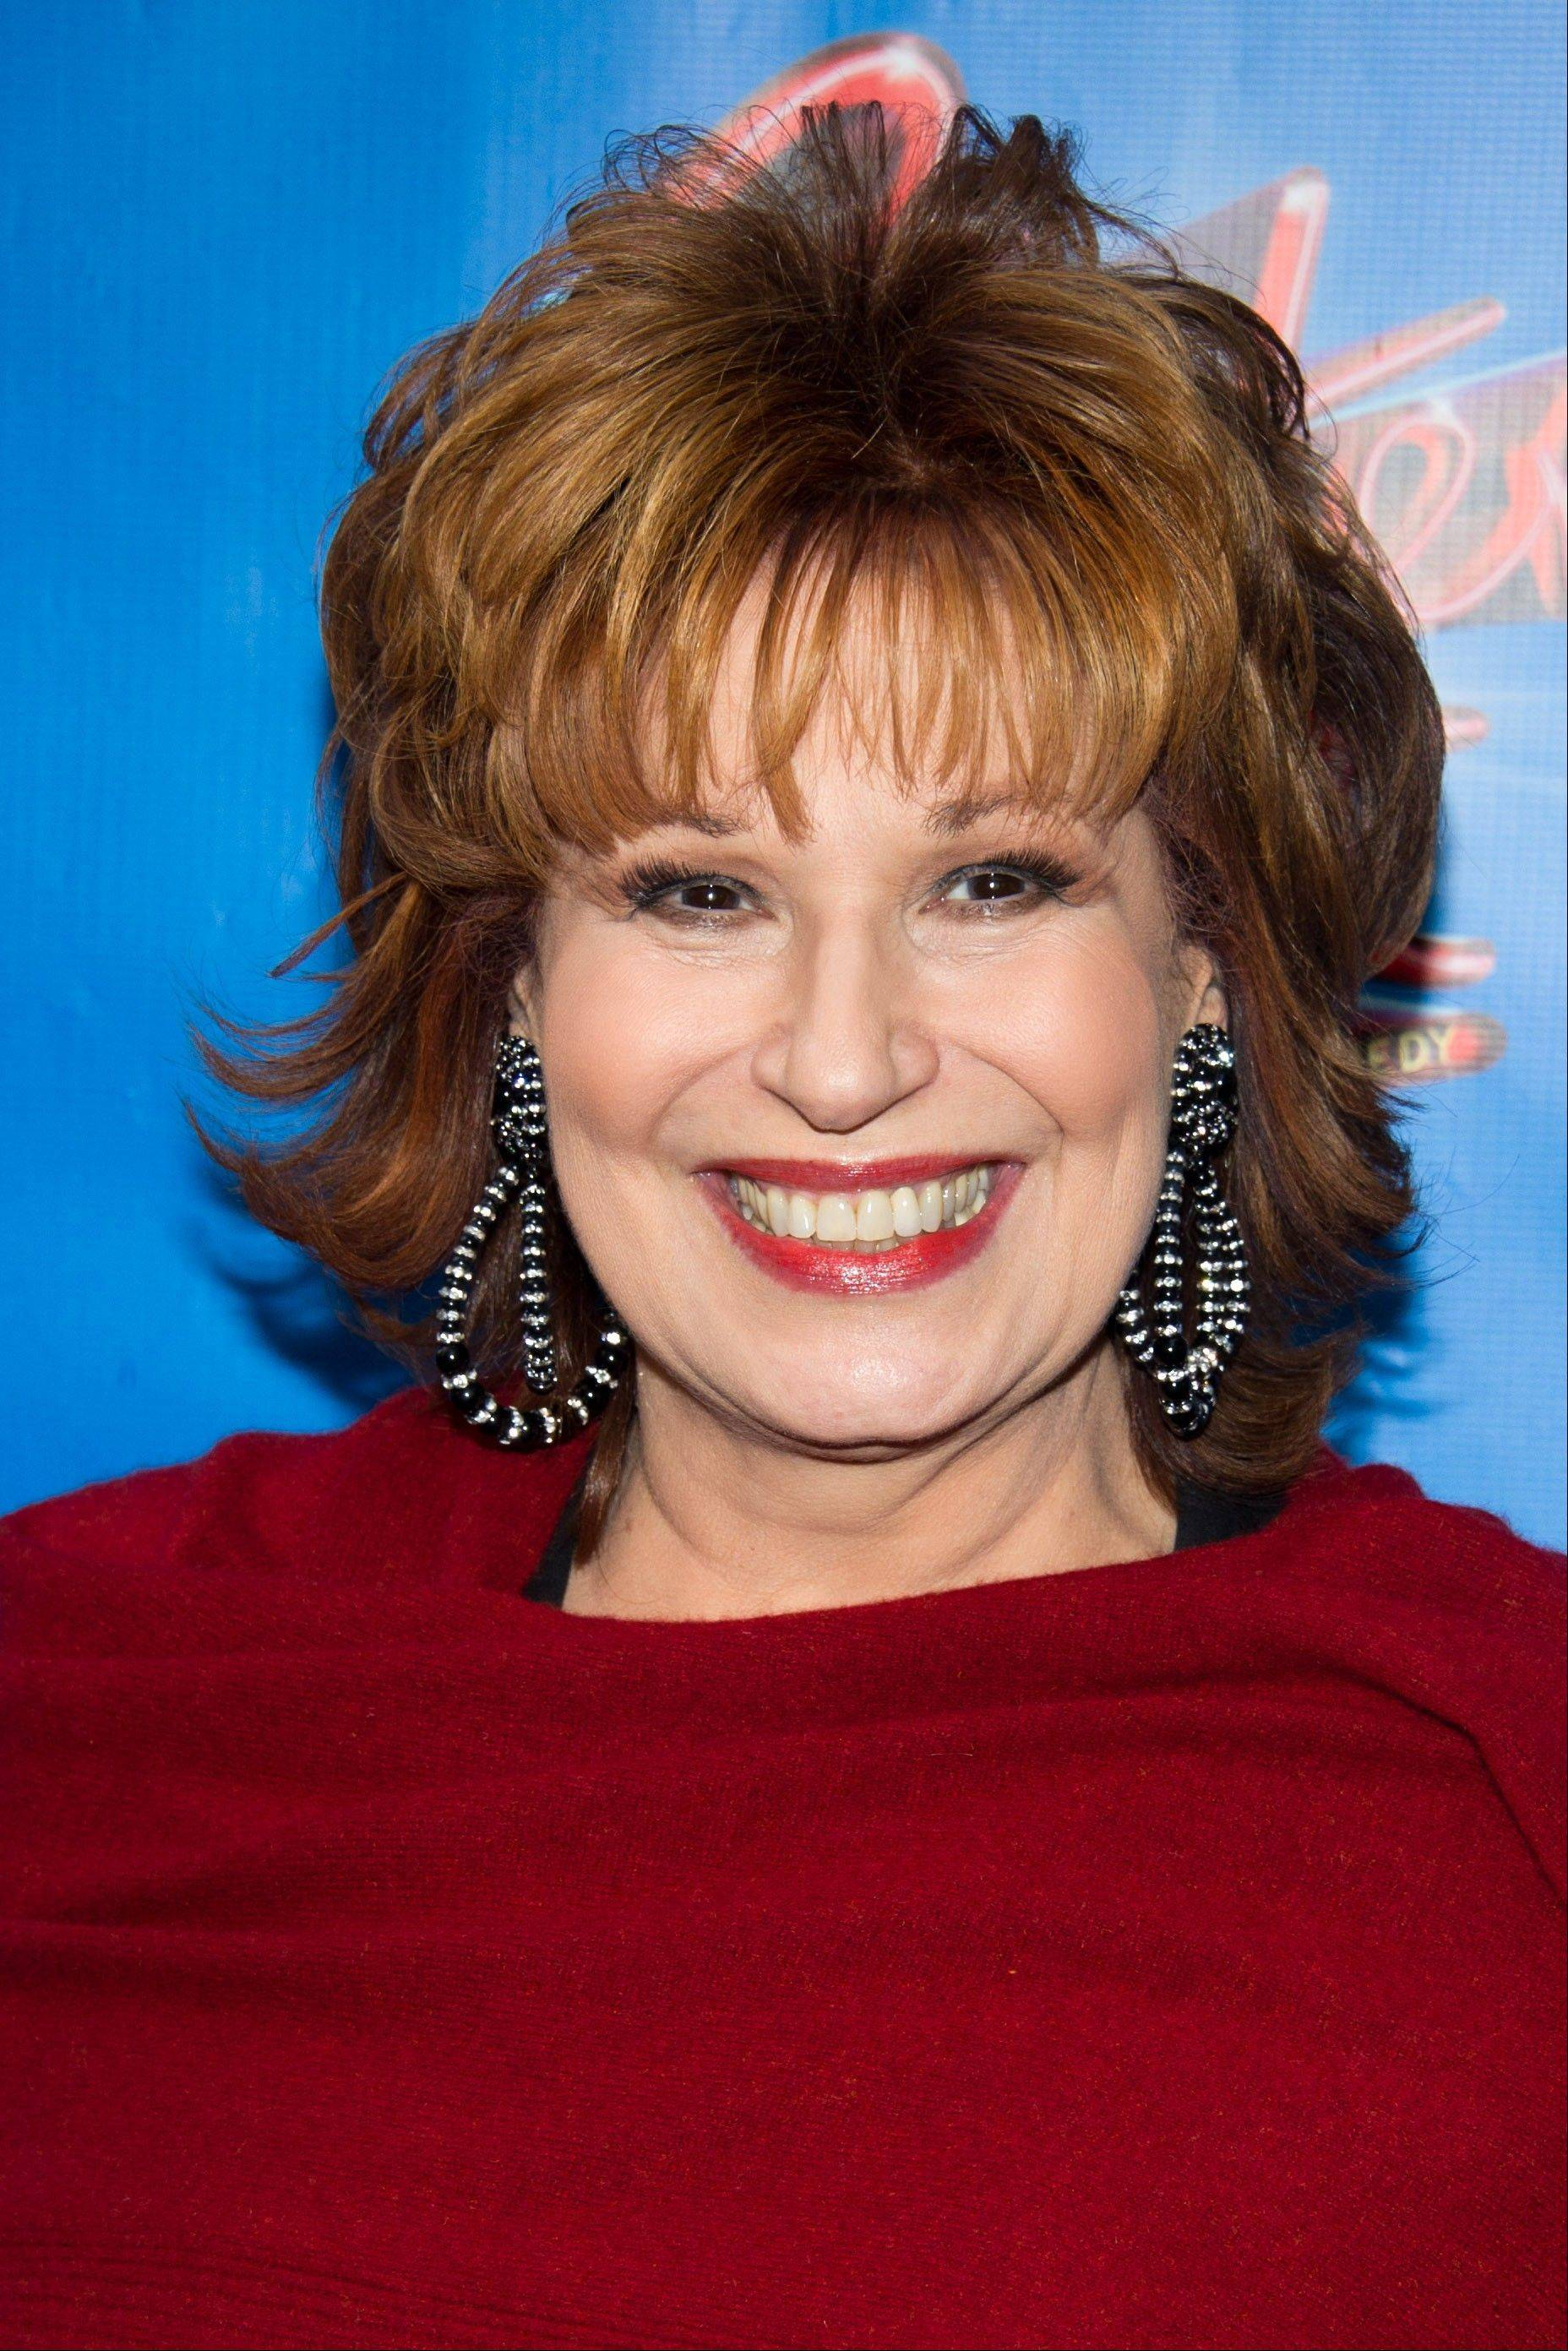 Joy Behar is leaving the ABC daytime talk show �The View� at the end of the current season in August 2013.